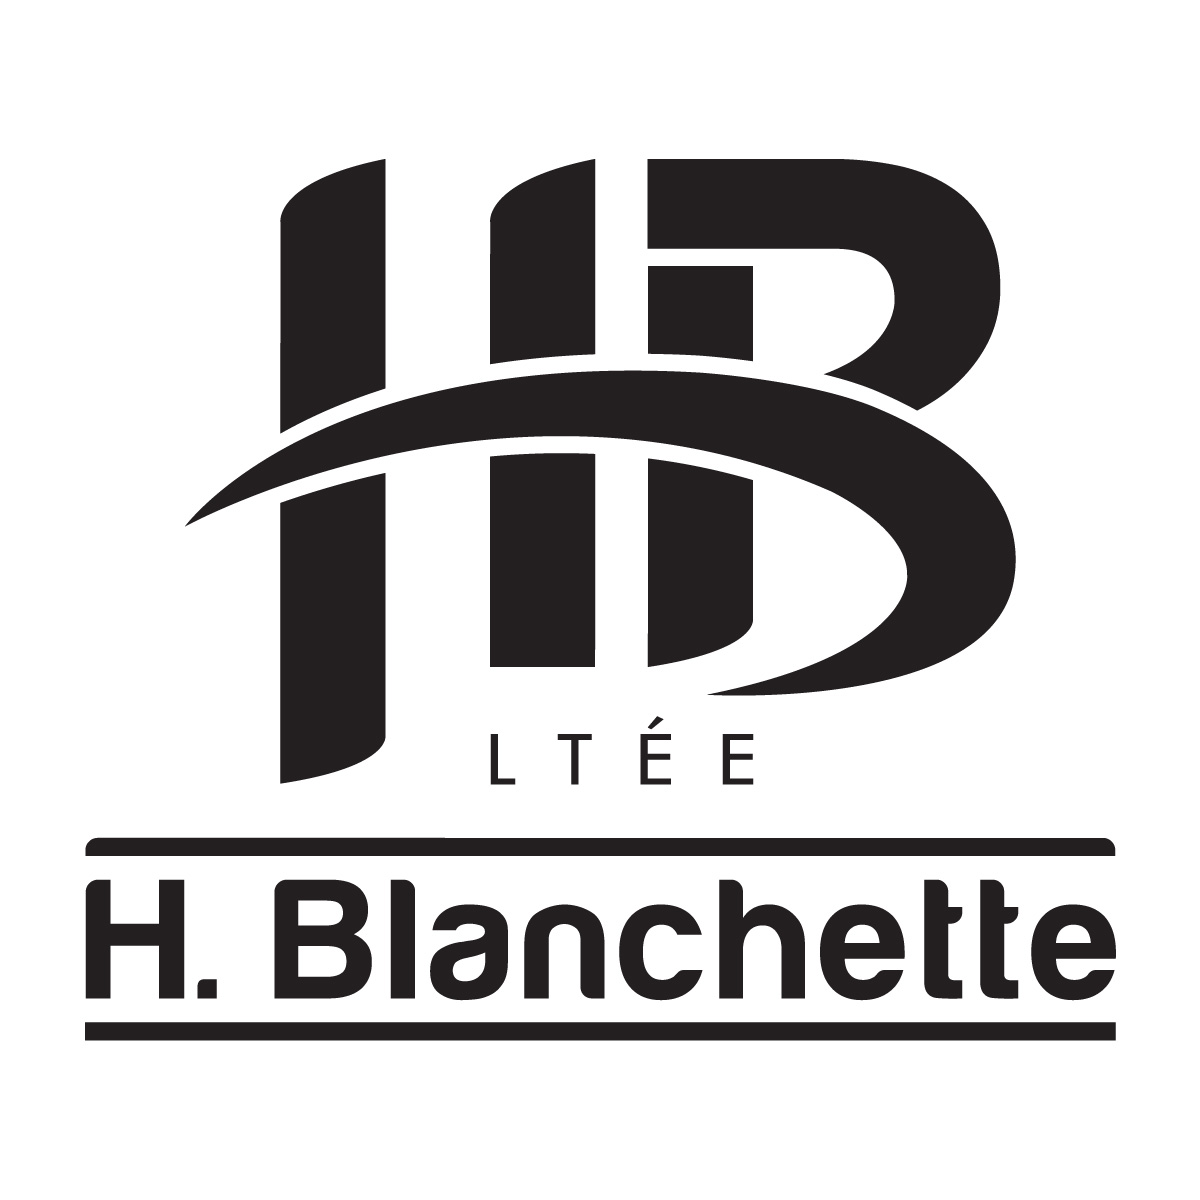 Structural Steel Logos : Steel frame construction h blanchette looking for a